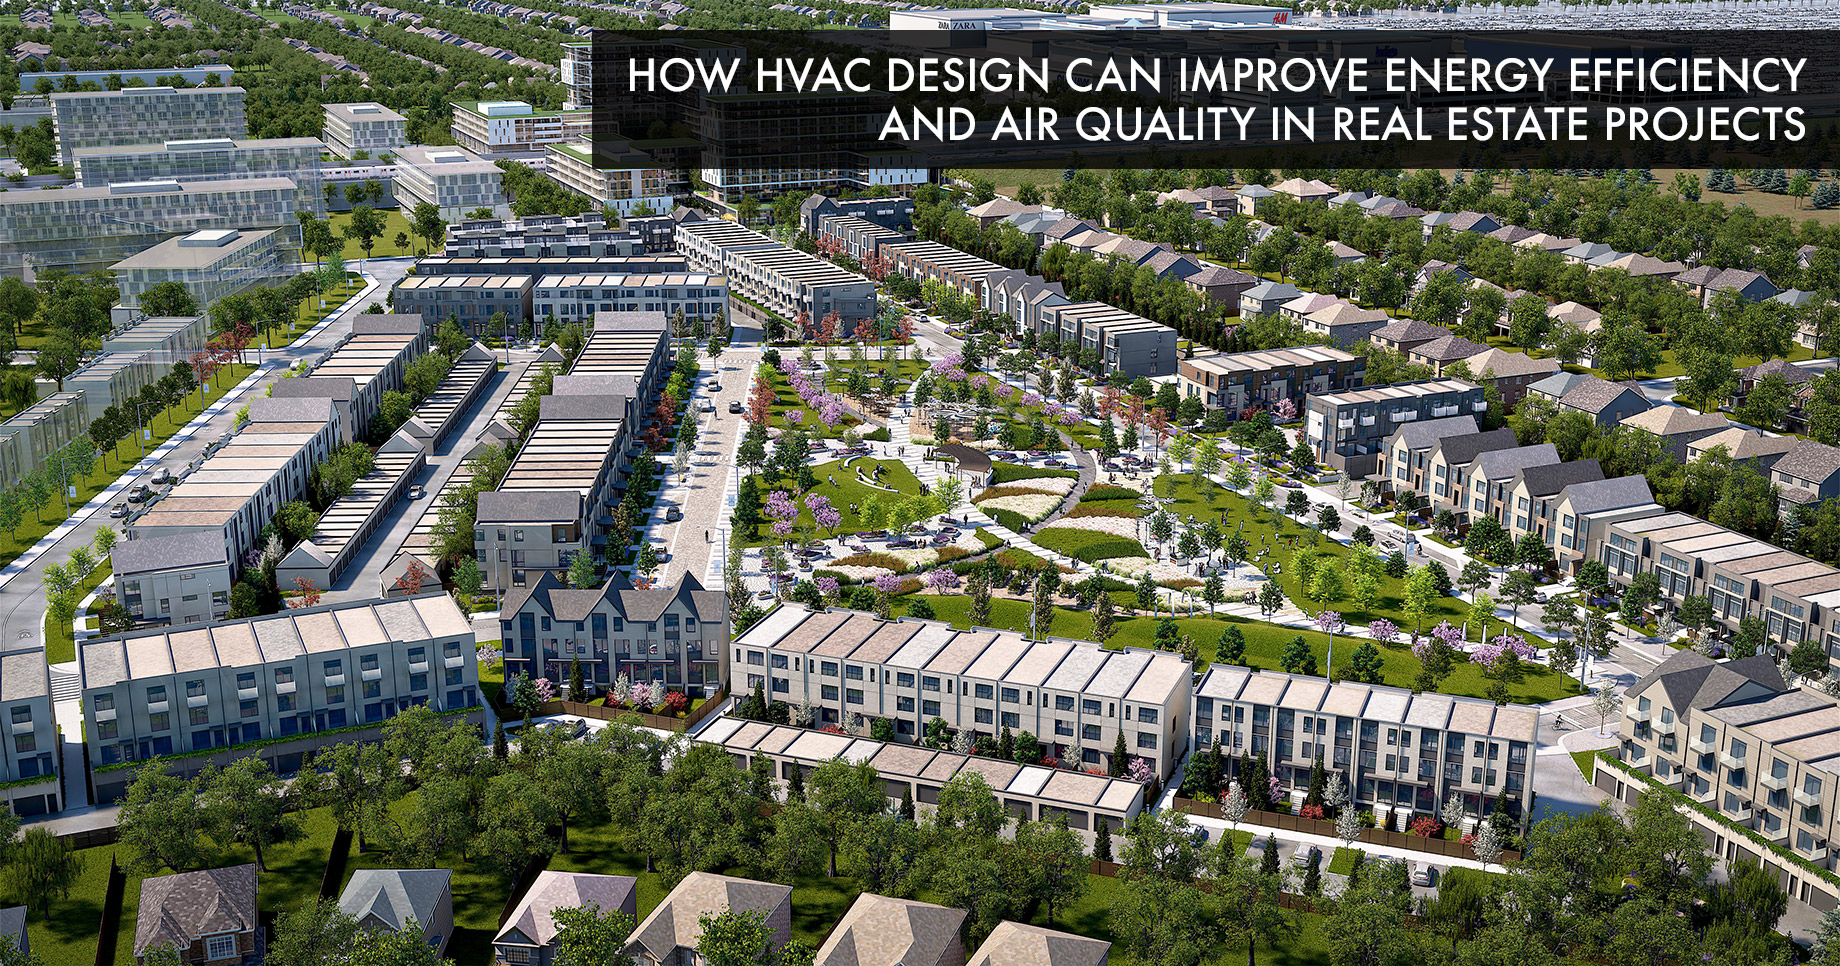 How HVAC Design Can Improve Energy Efficiency and Air Quality in Real Estate Projects